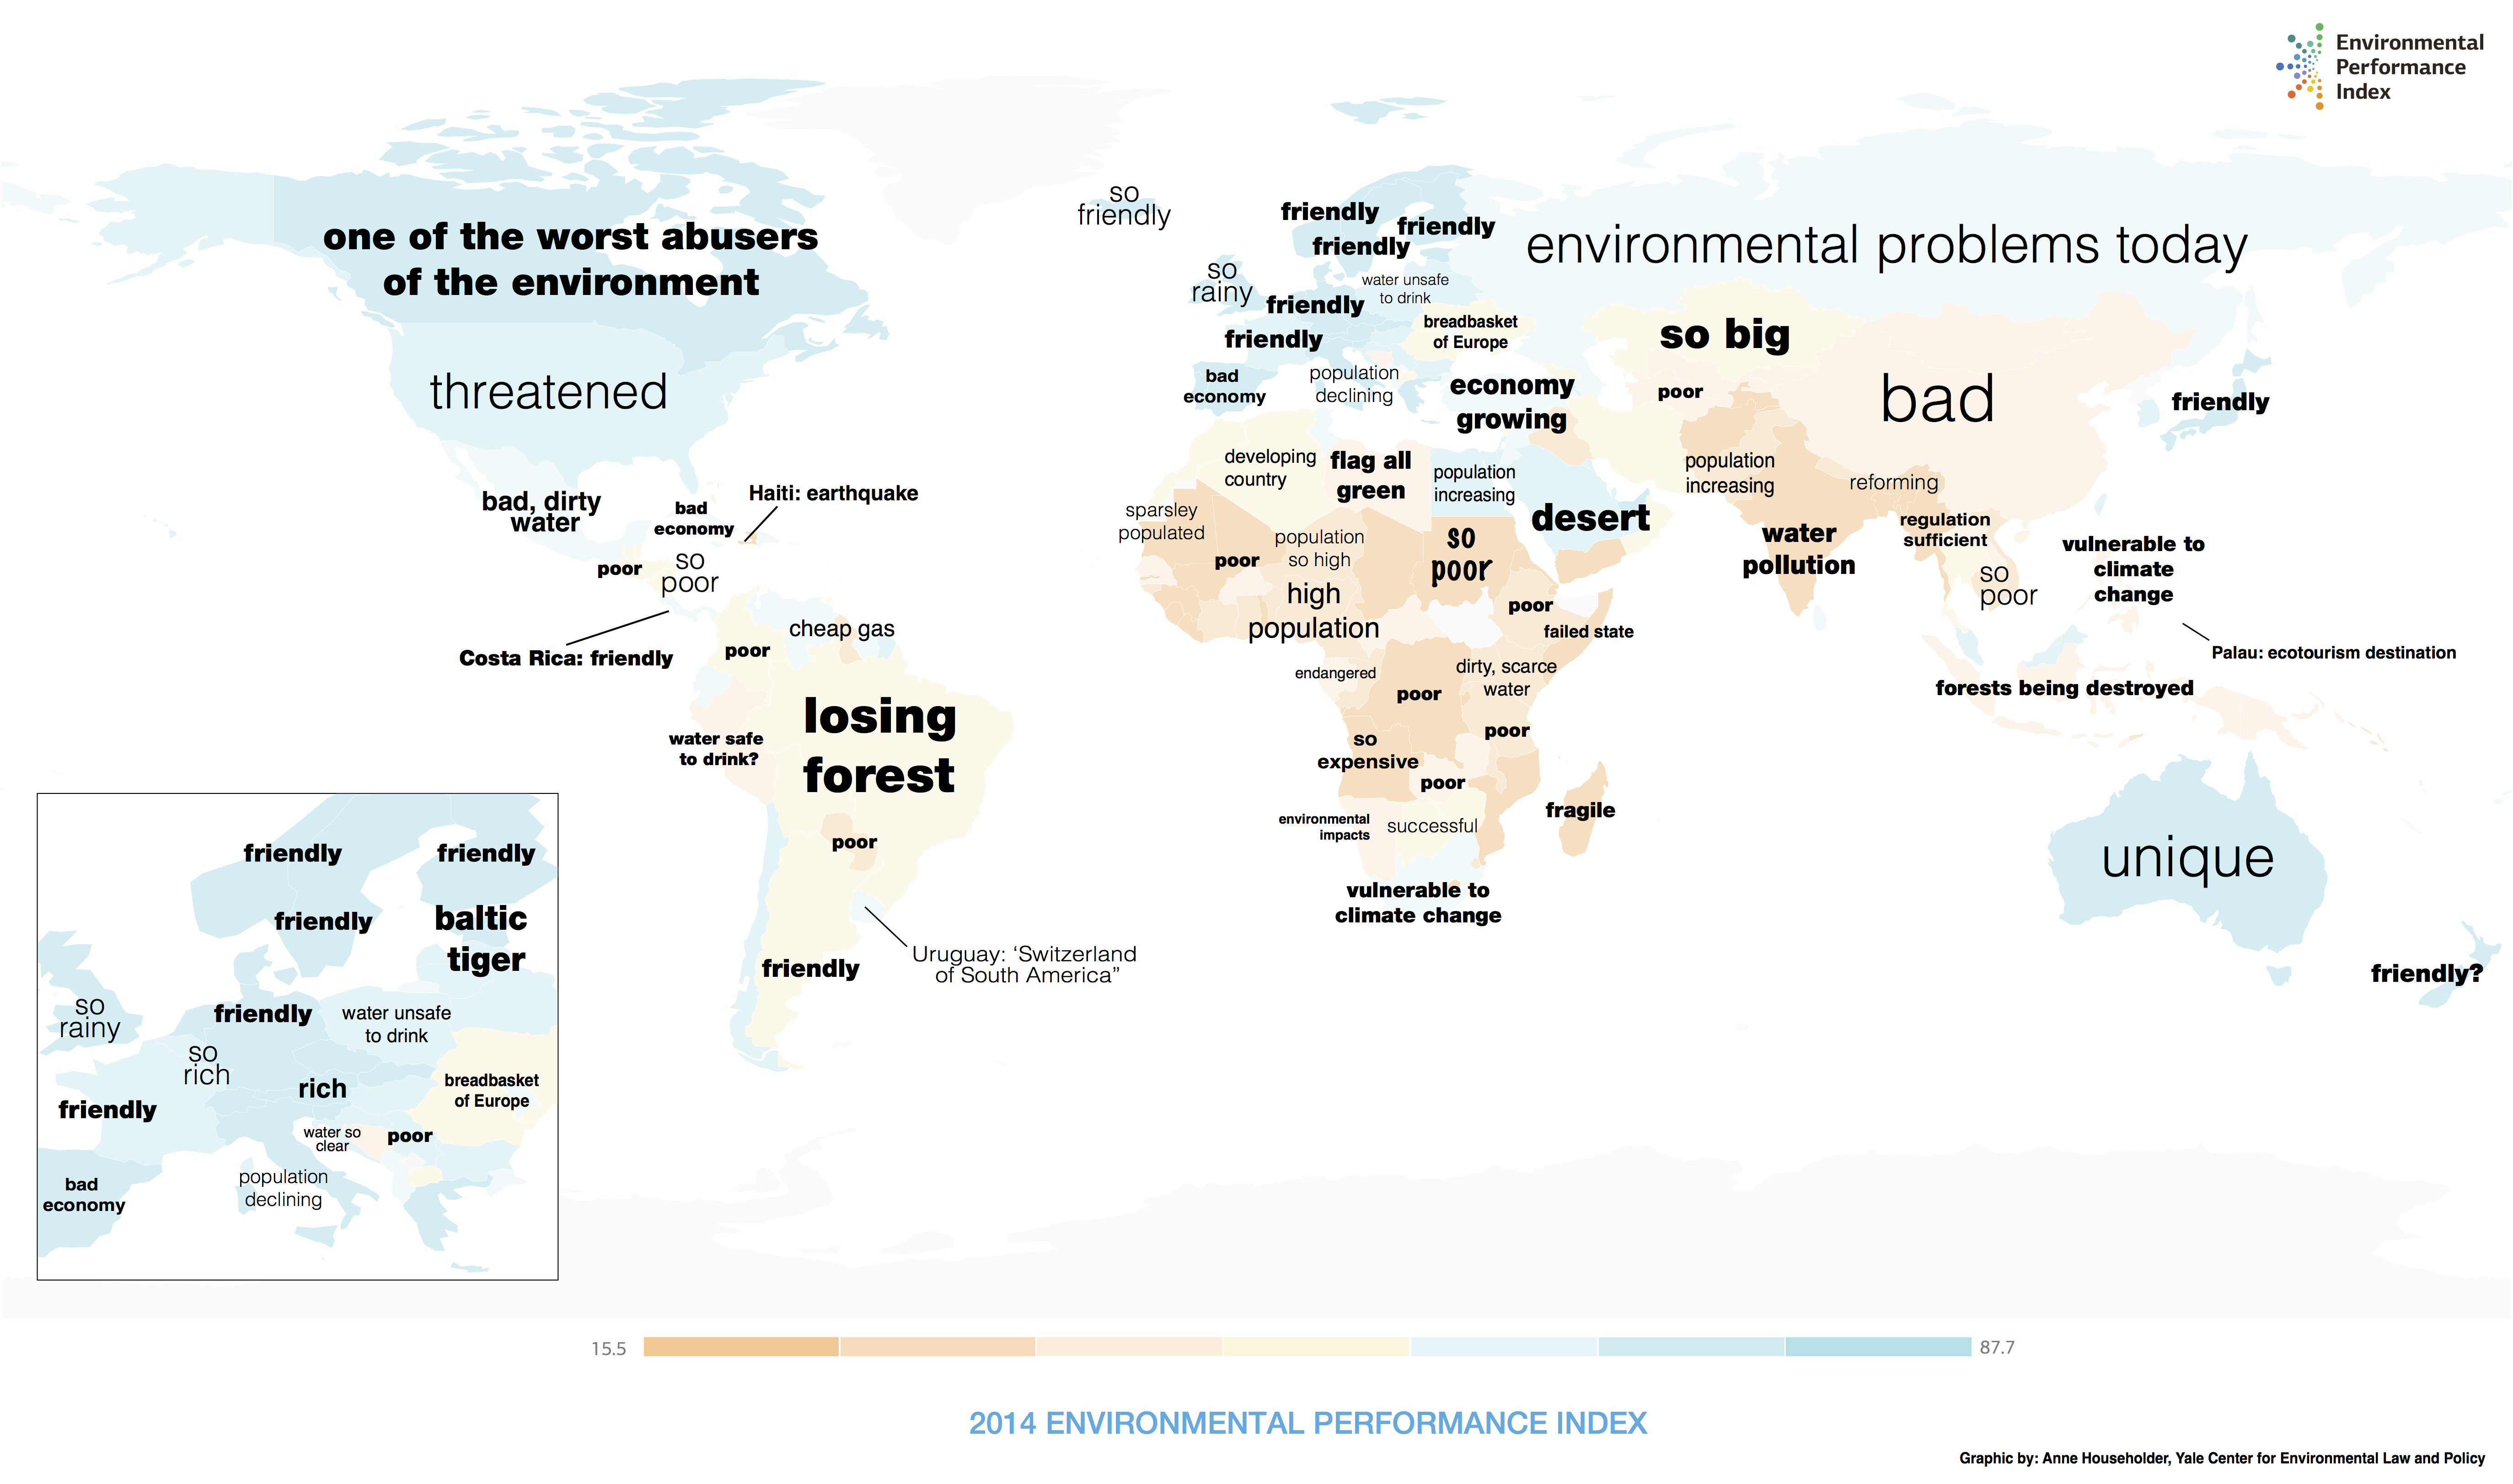 Environmental Performance, According to Google